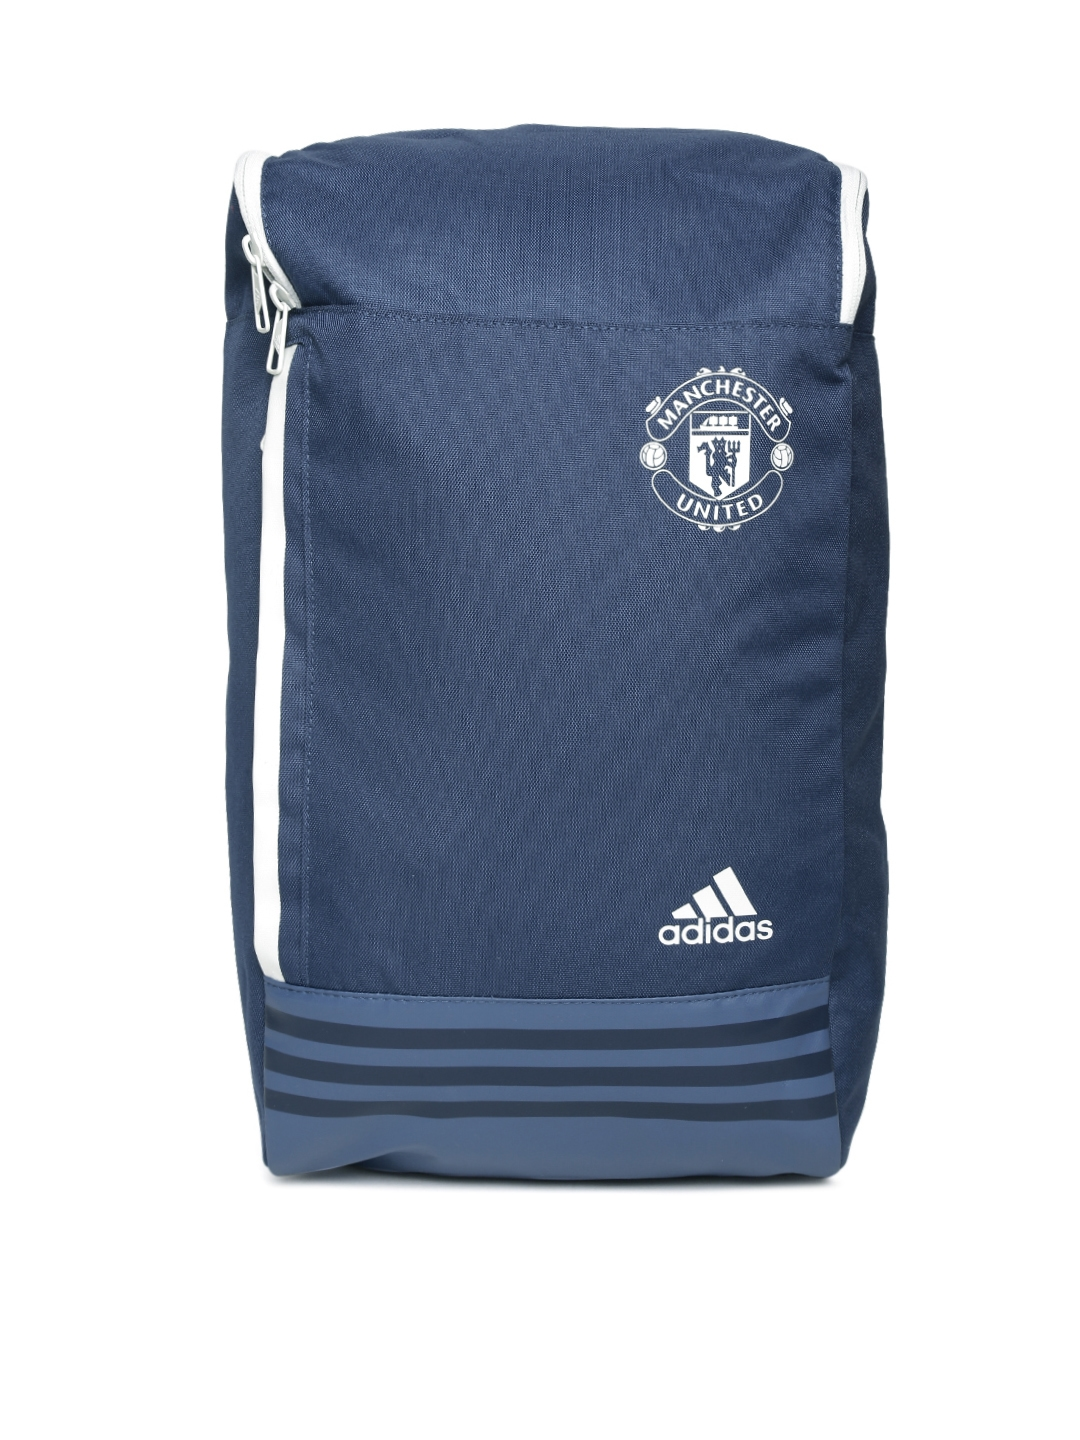 05a9a795a412 Buy buy adidas bags online   OFF64% Discounted